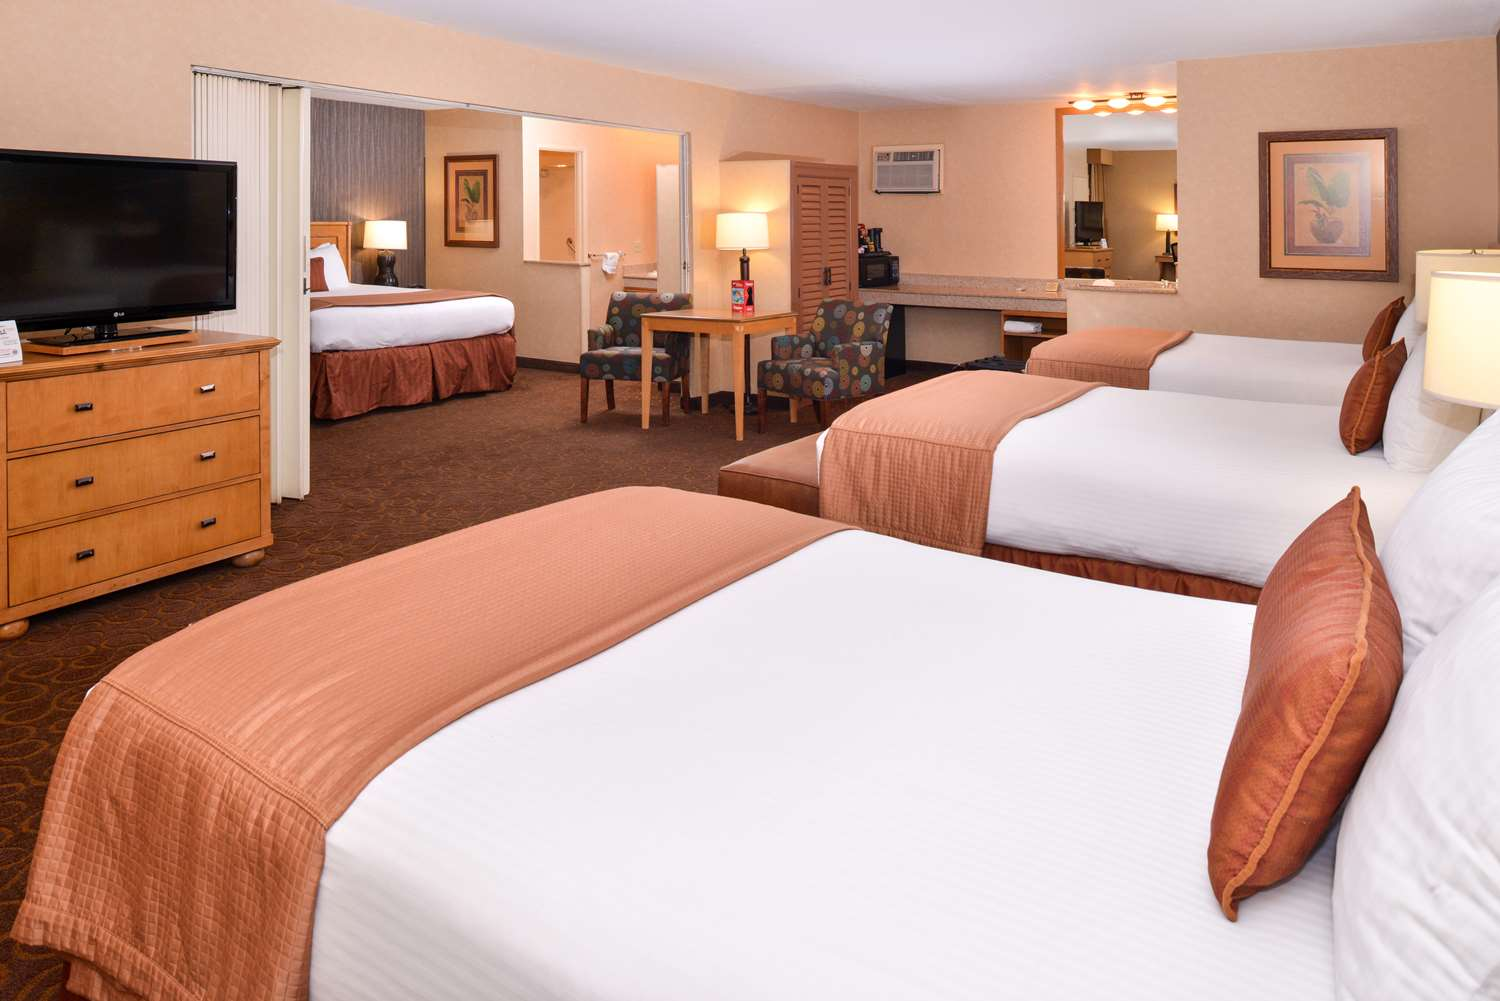 King Suite with 3 Double Beds - BEST WESTERN PLUS Pavilions